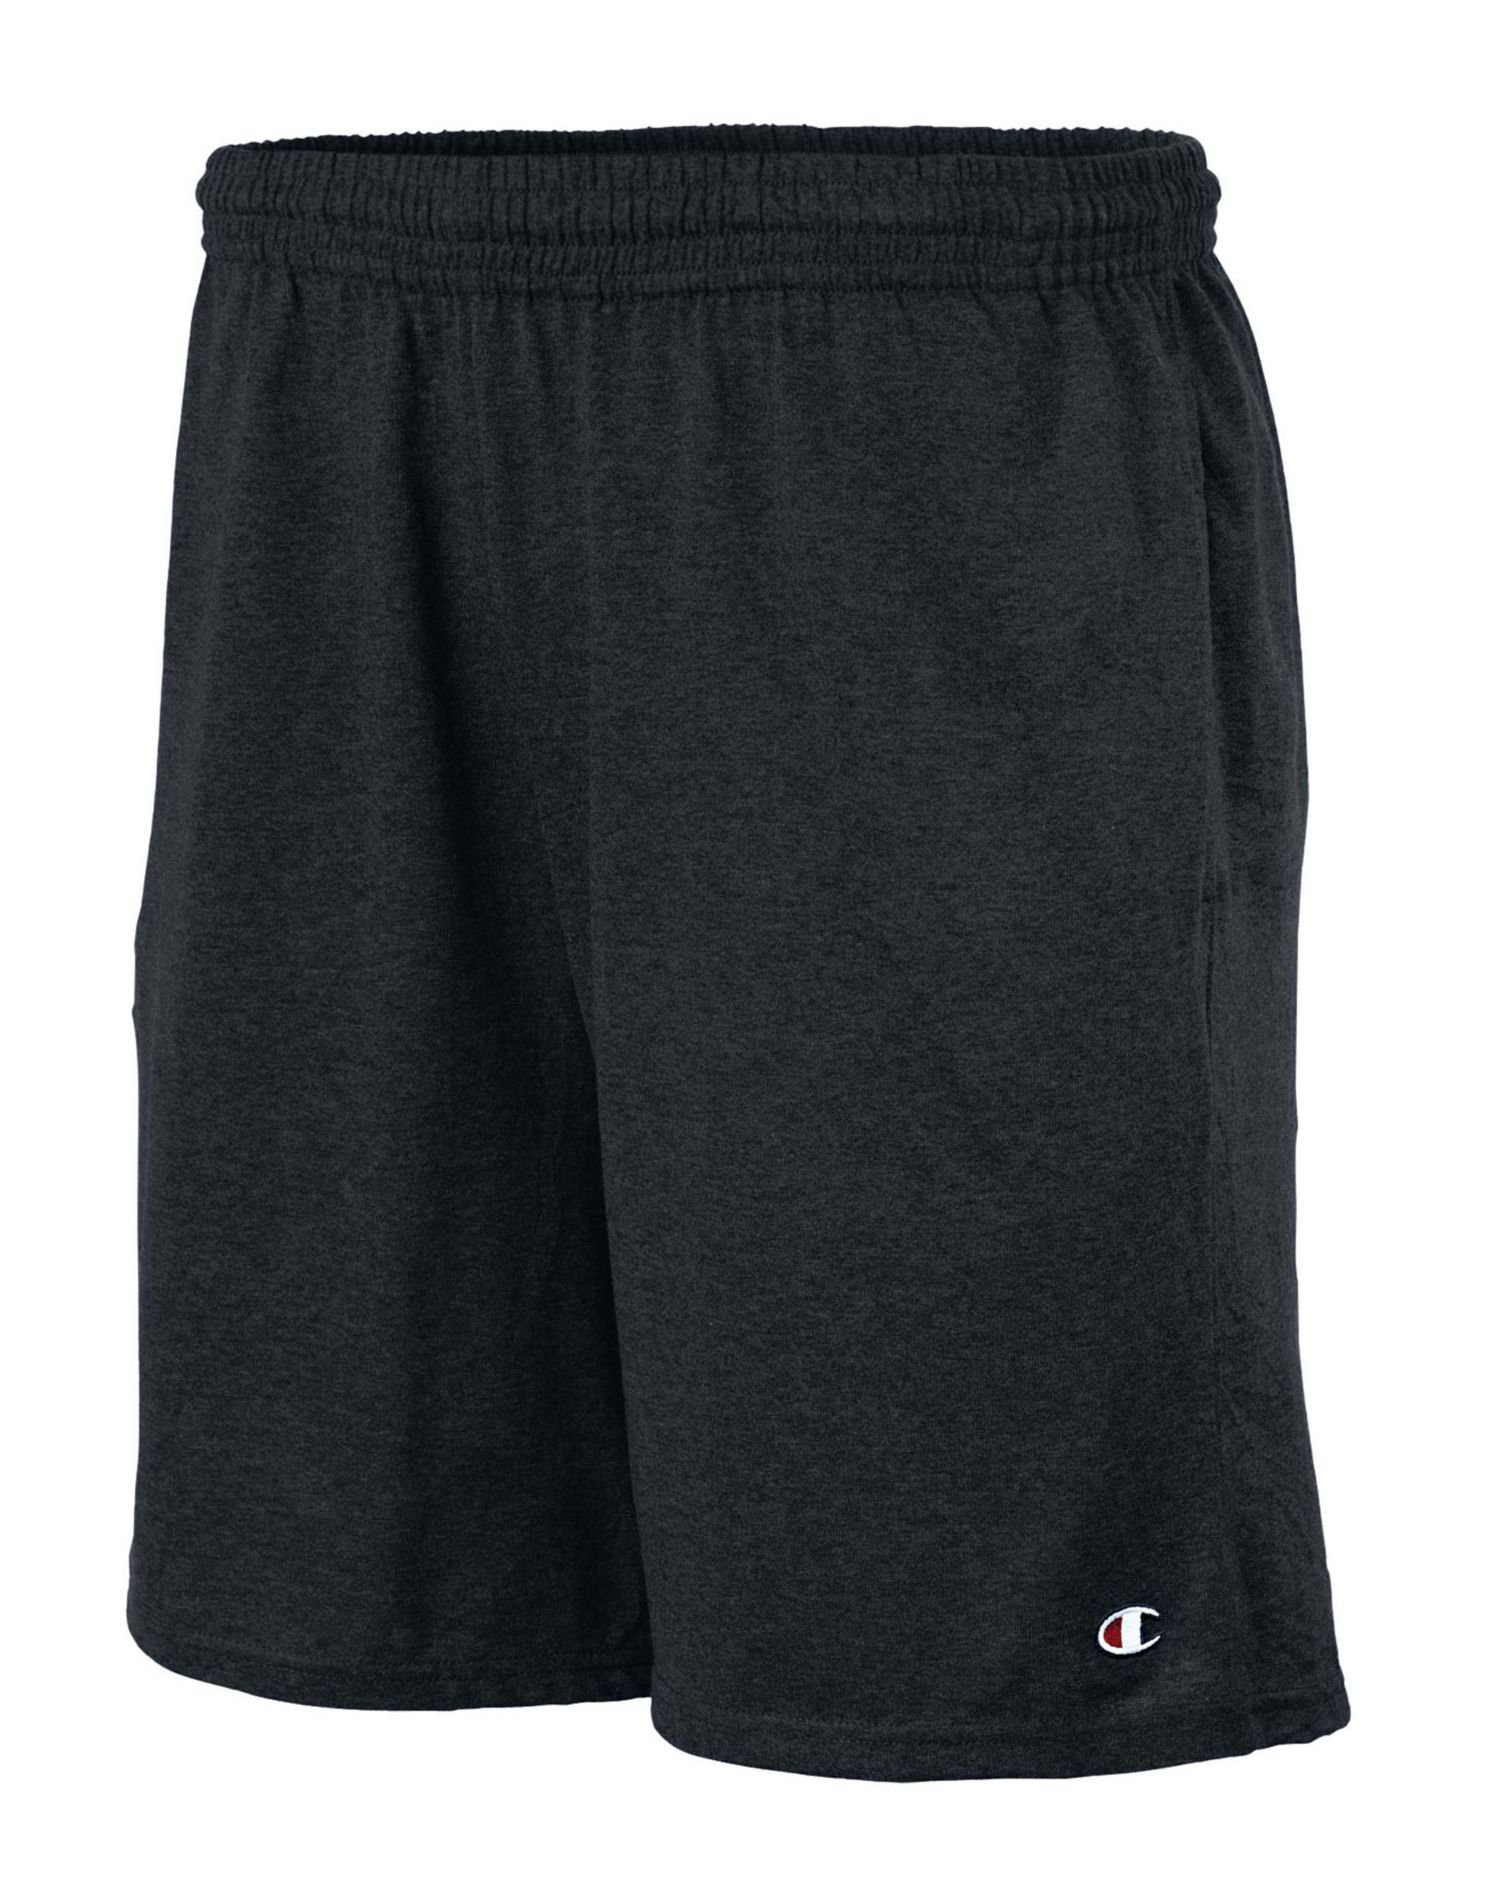 Champion Men's Jersey Short with Pockets, Maroon, Large by Champion (Image #2)